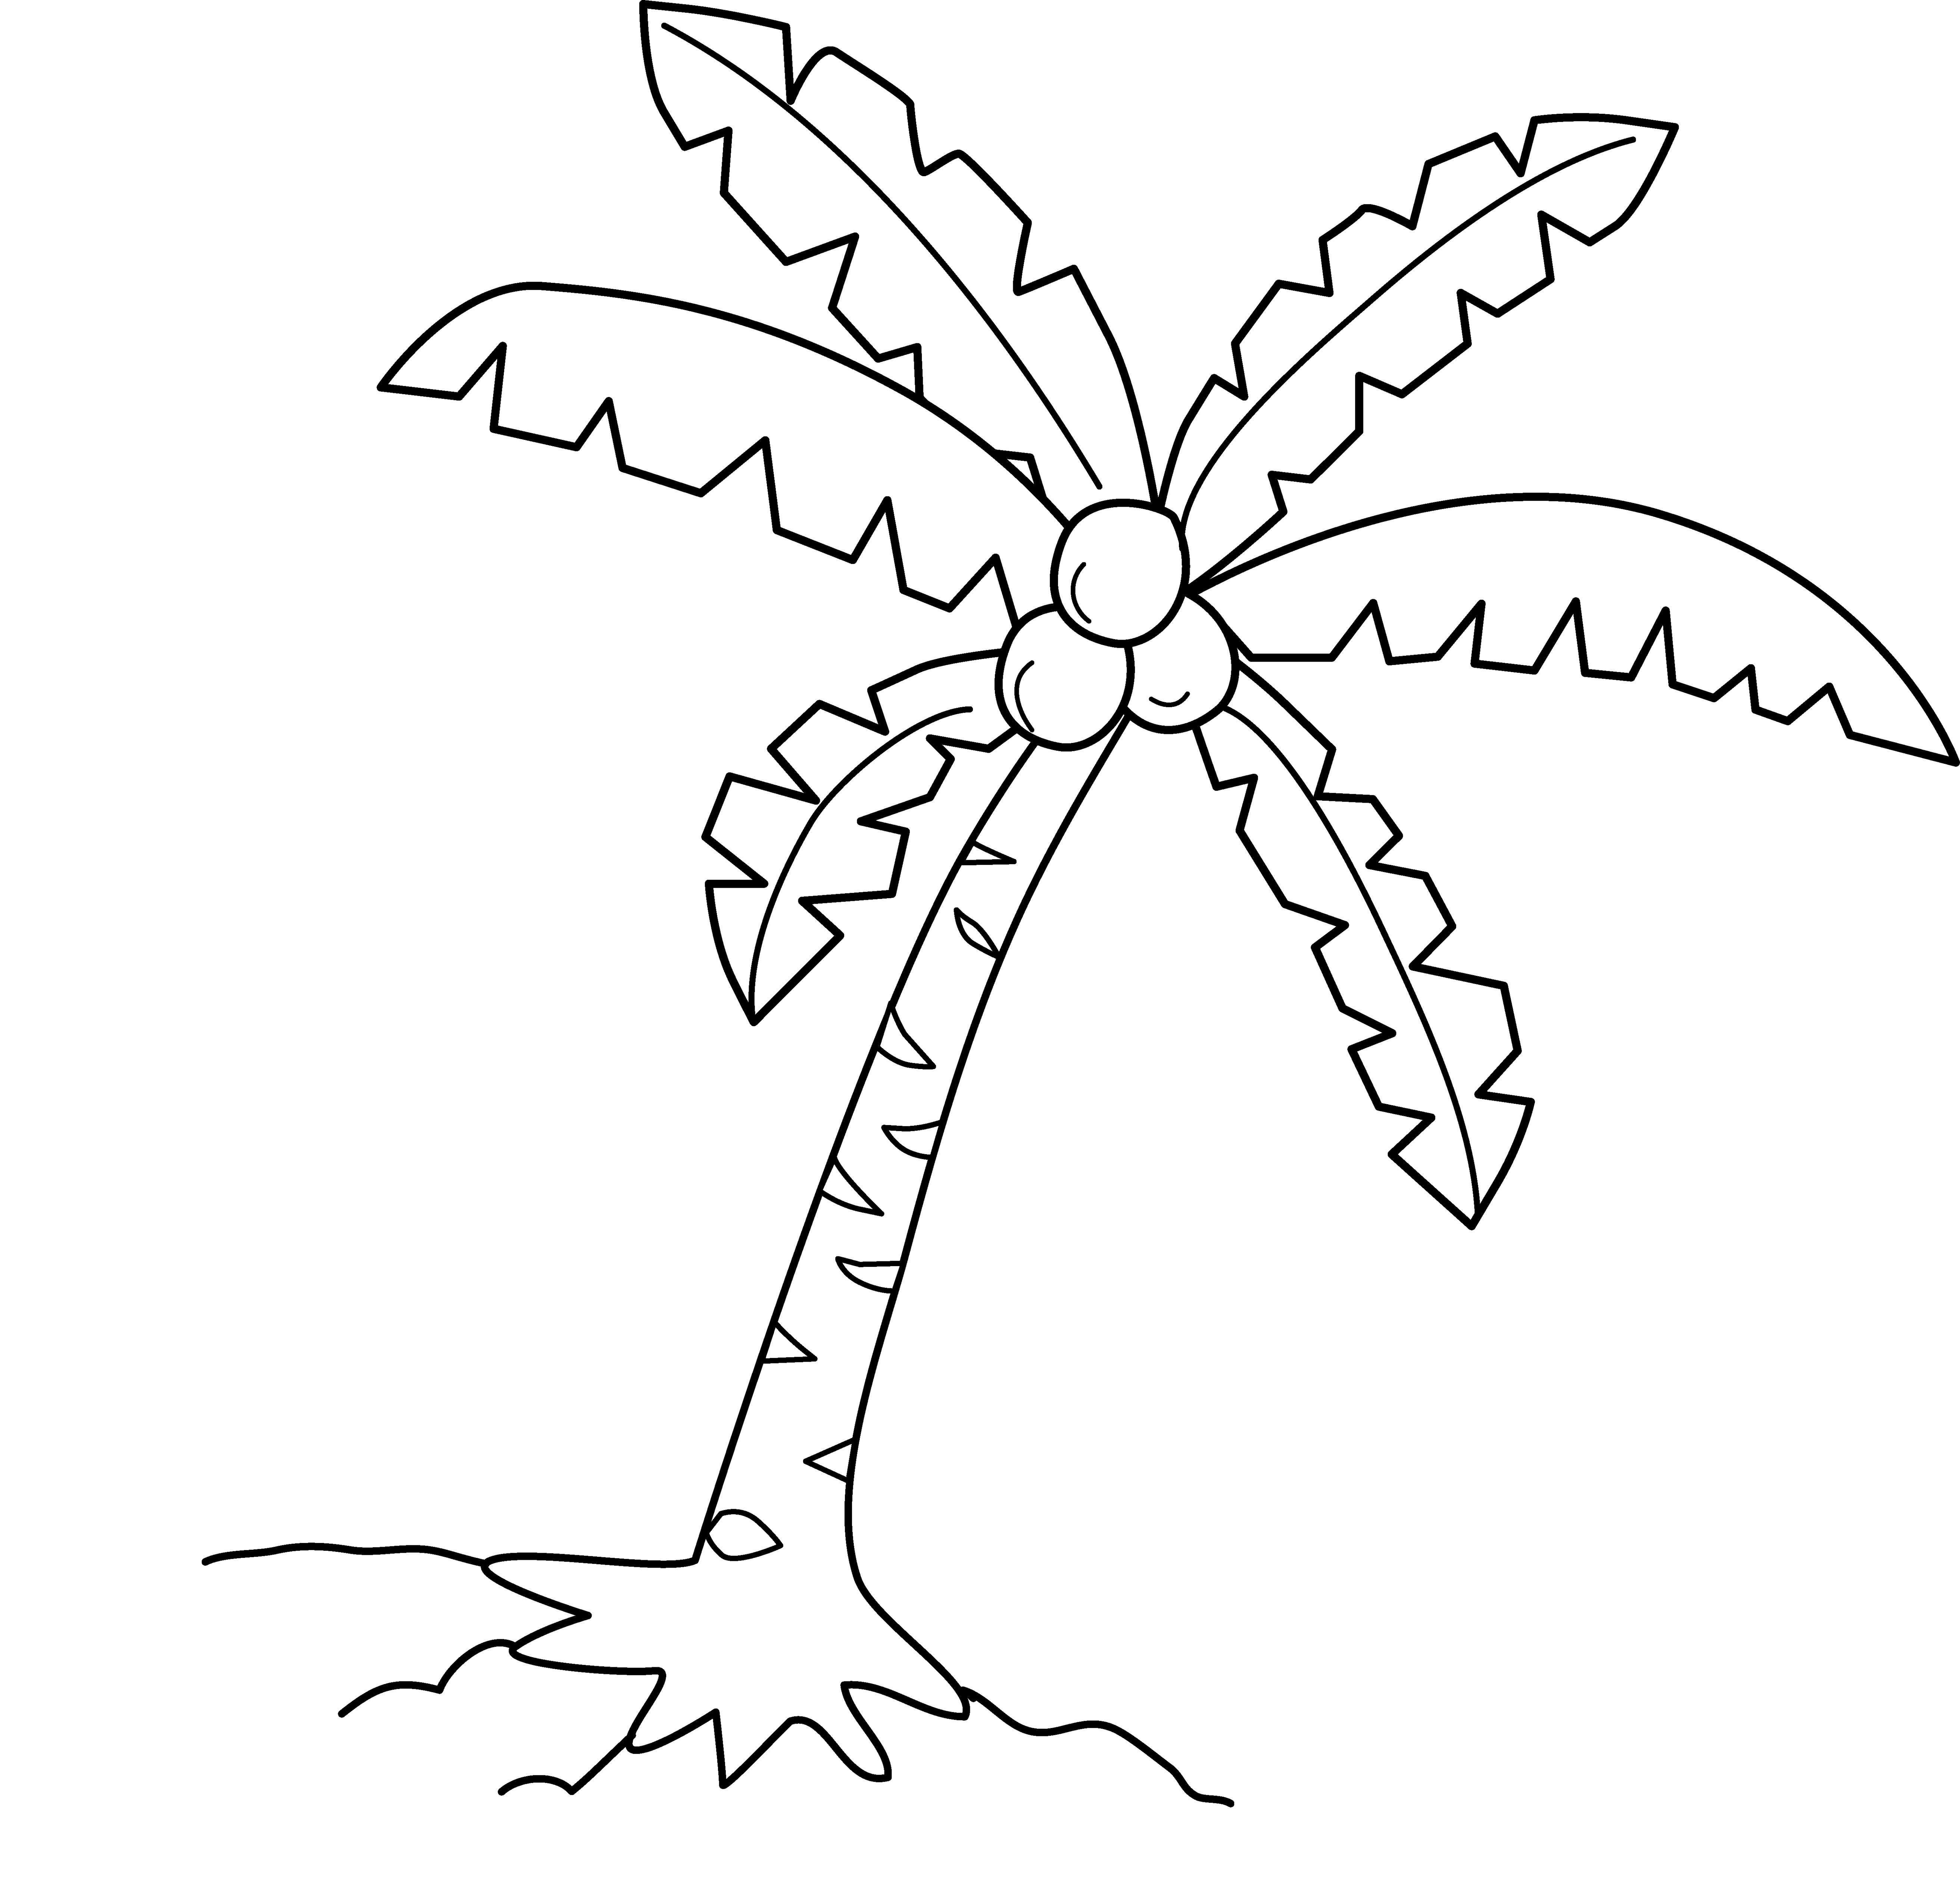 Coconut Tree Drawing At Getdrawings